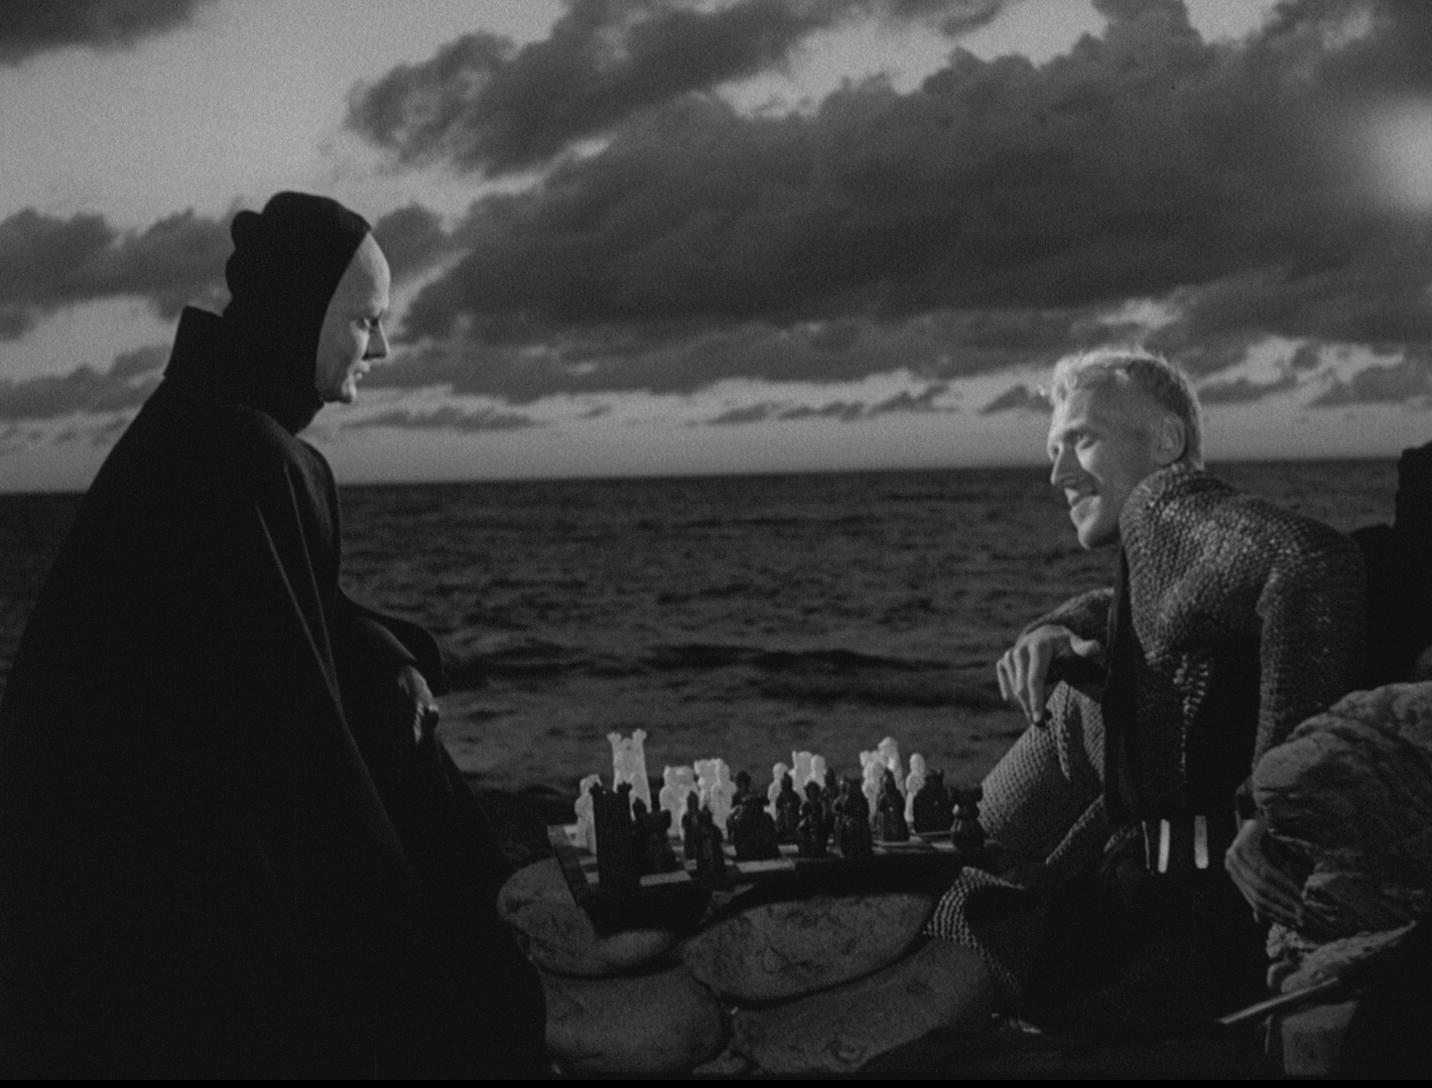 https://i0.wp.com/theyoungfolks.com/wp-content/uploads/2015/12/ingmar_bergman_seventh_seal_2a_4.jpg